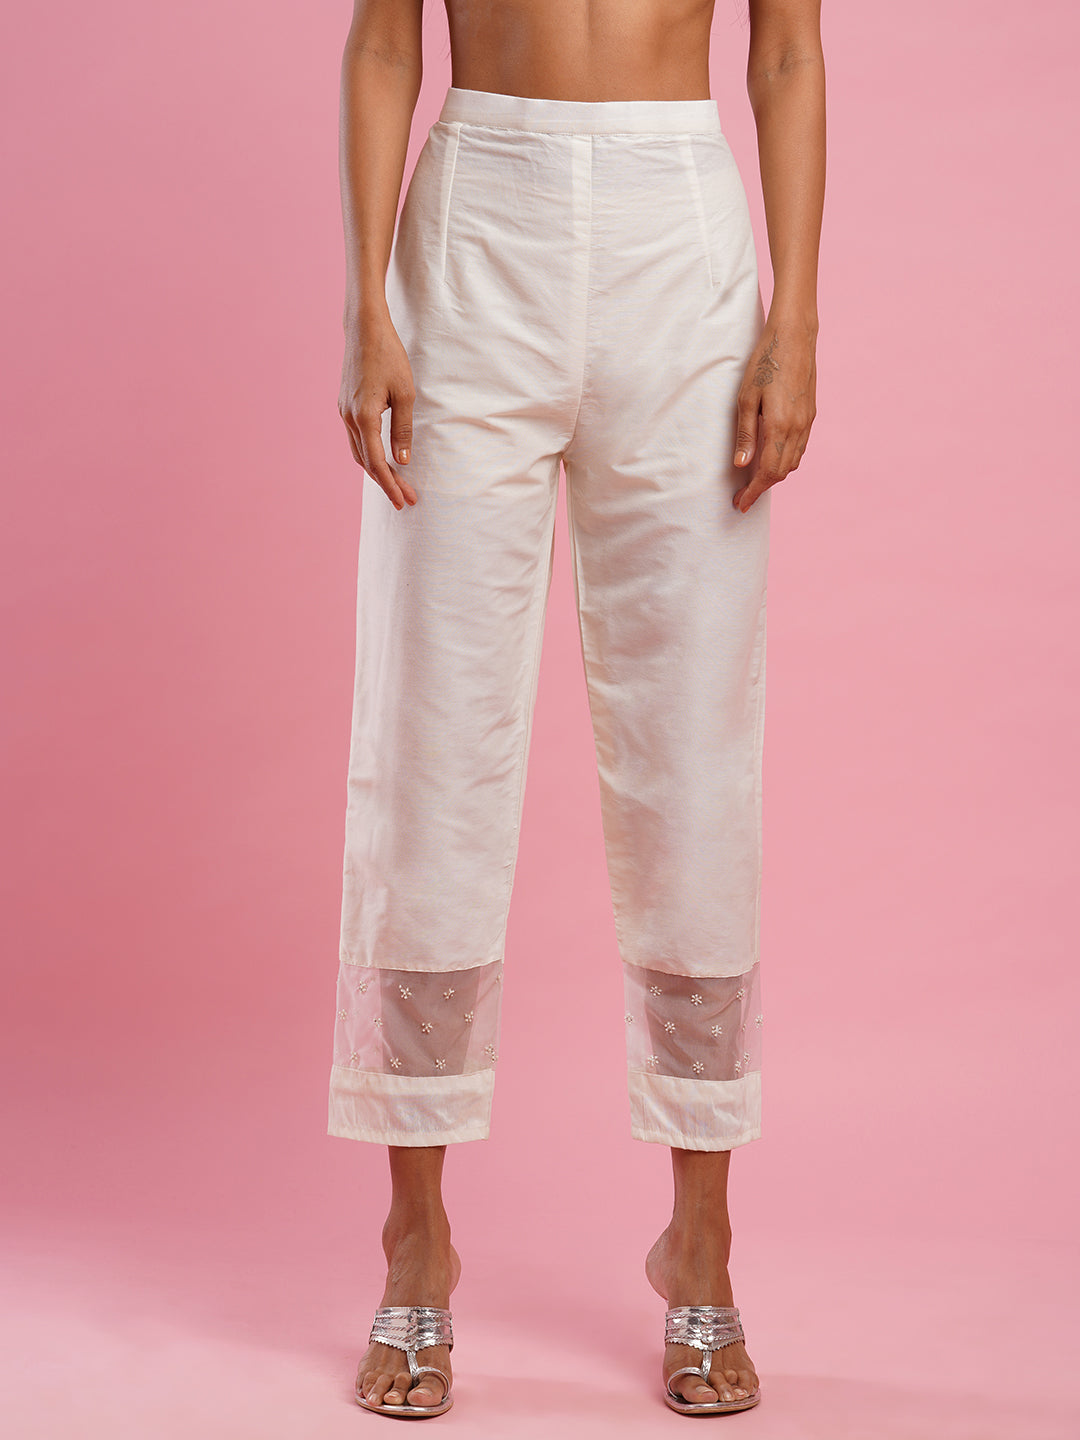 Embellished Patch worked Pant - Off White